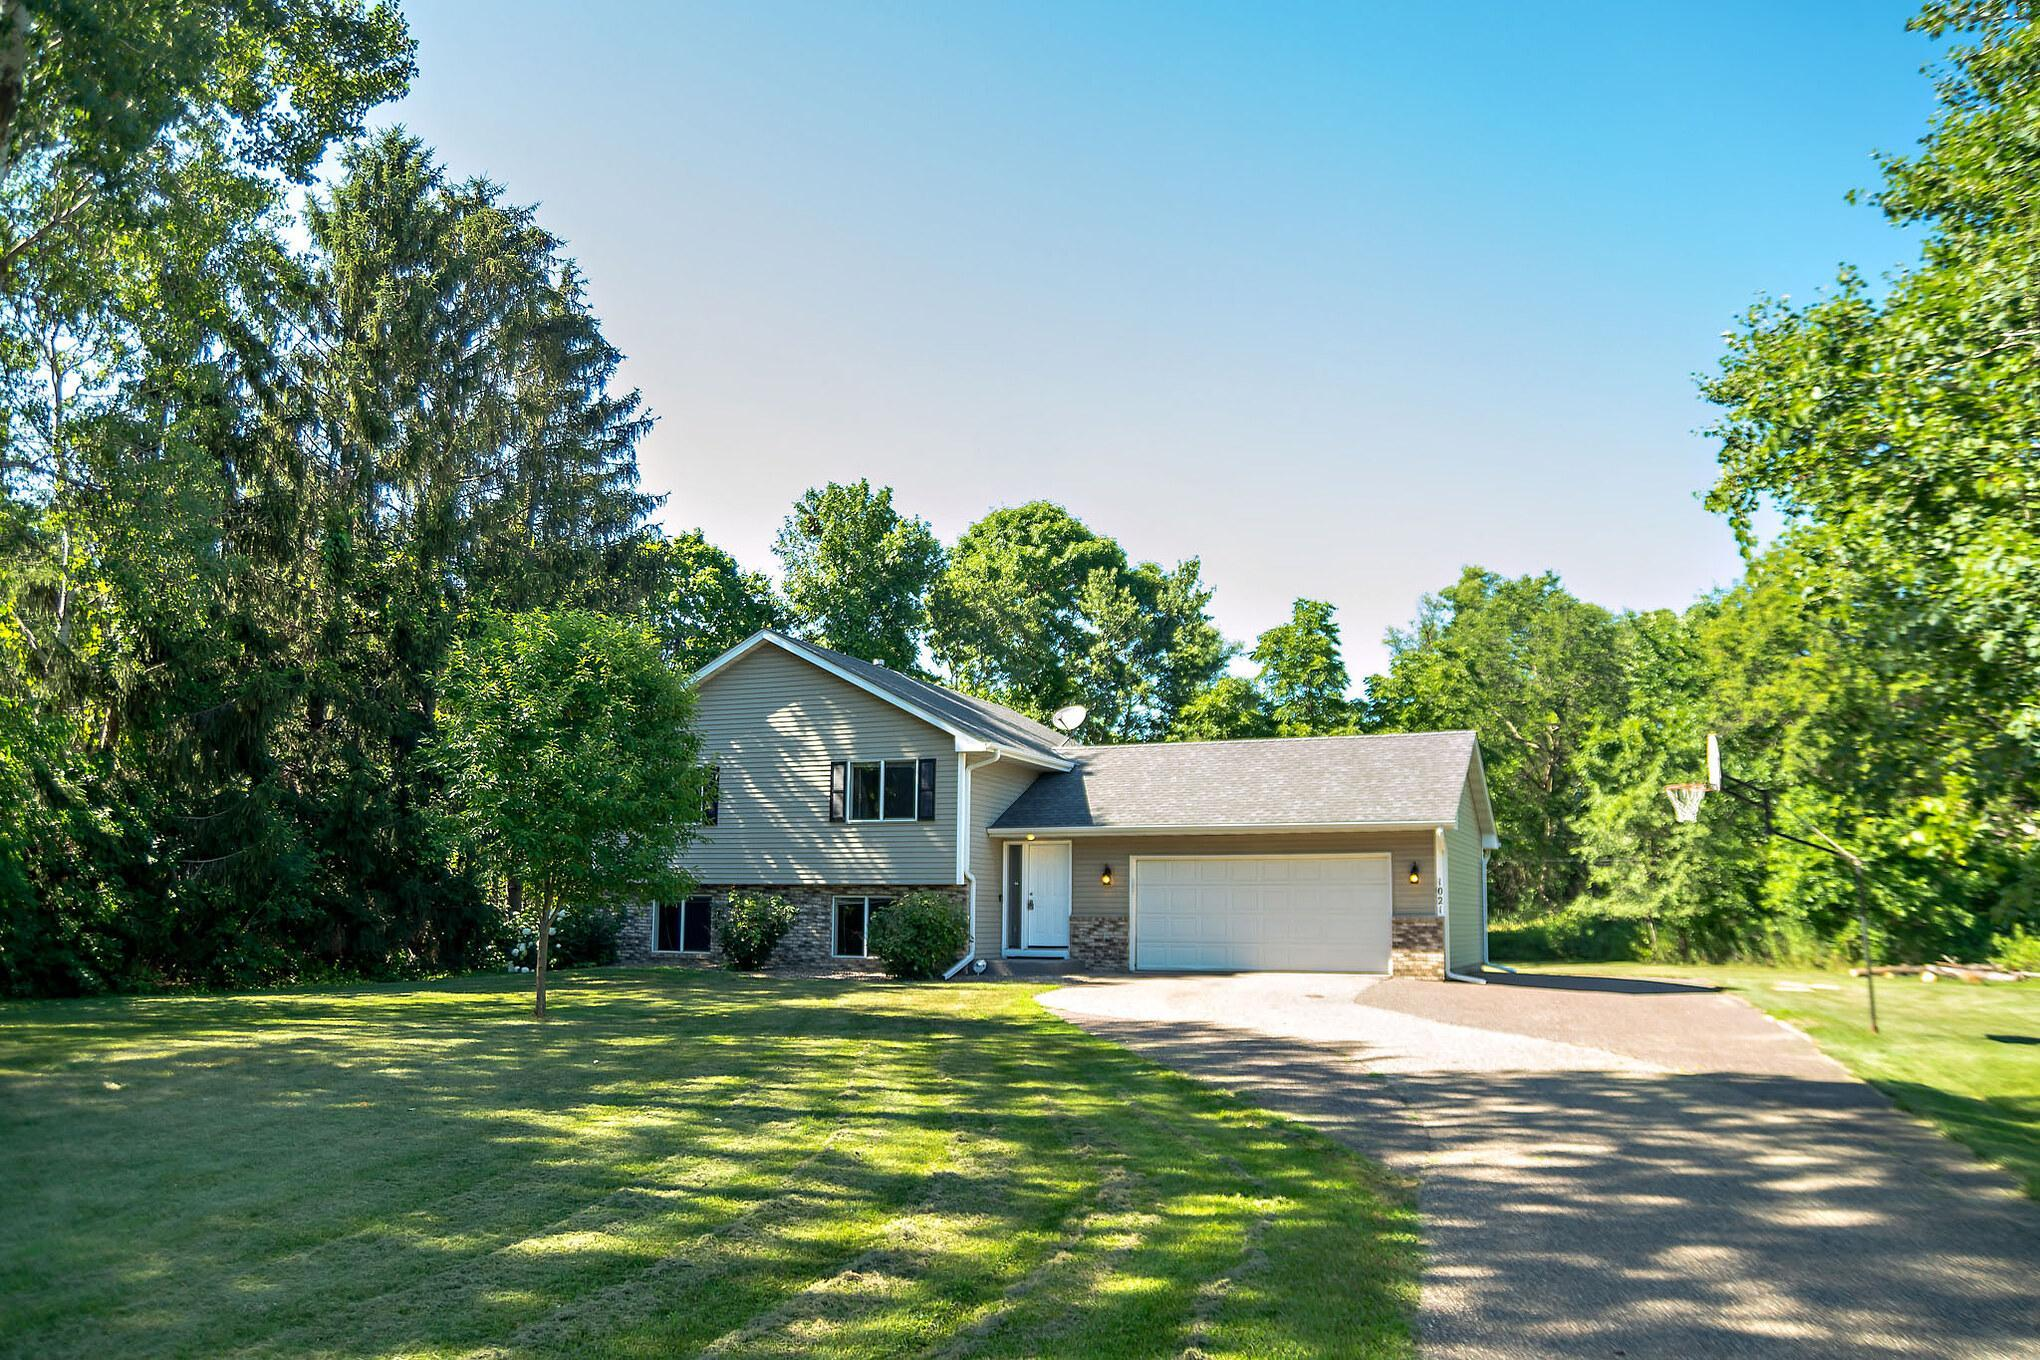 1021 93rd NW Property Photo - Coon Rapids, MN real estate listing